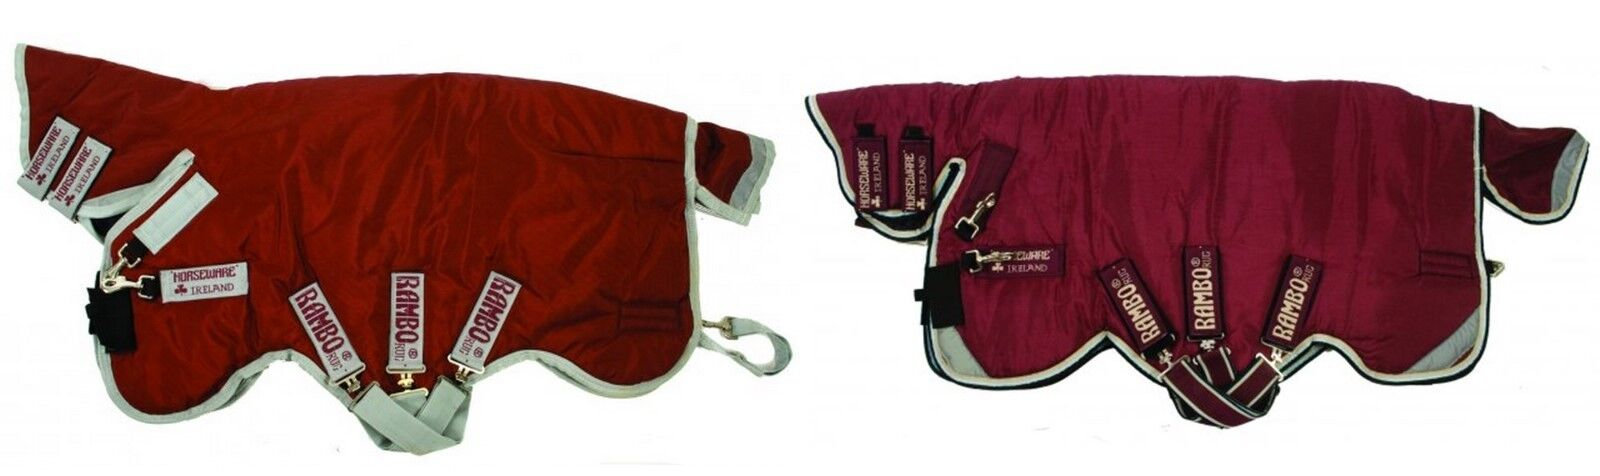 HORSEWARE RAMBO PLUS ALL IN ONE HEAVYWEIGHT 370g COMBO HORSE TURNOUT RUG